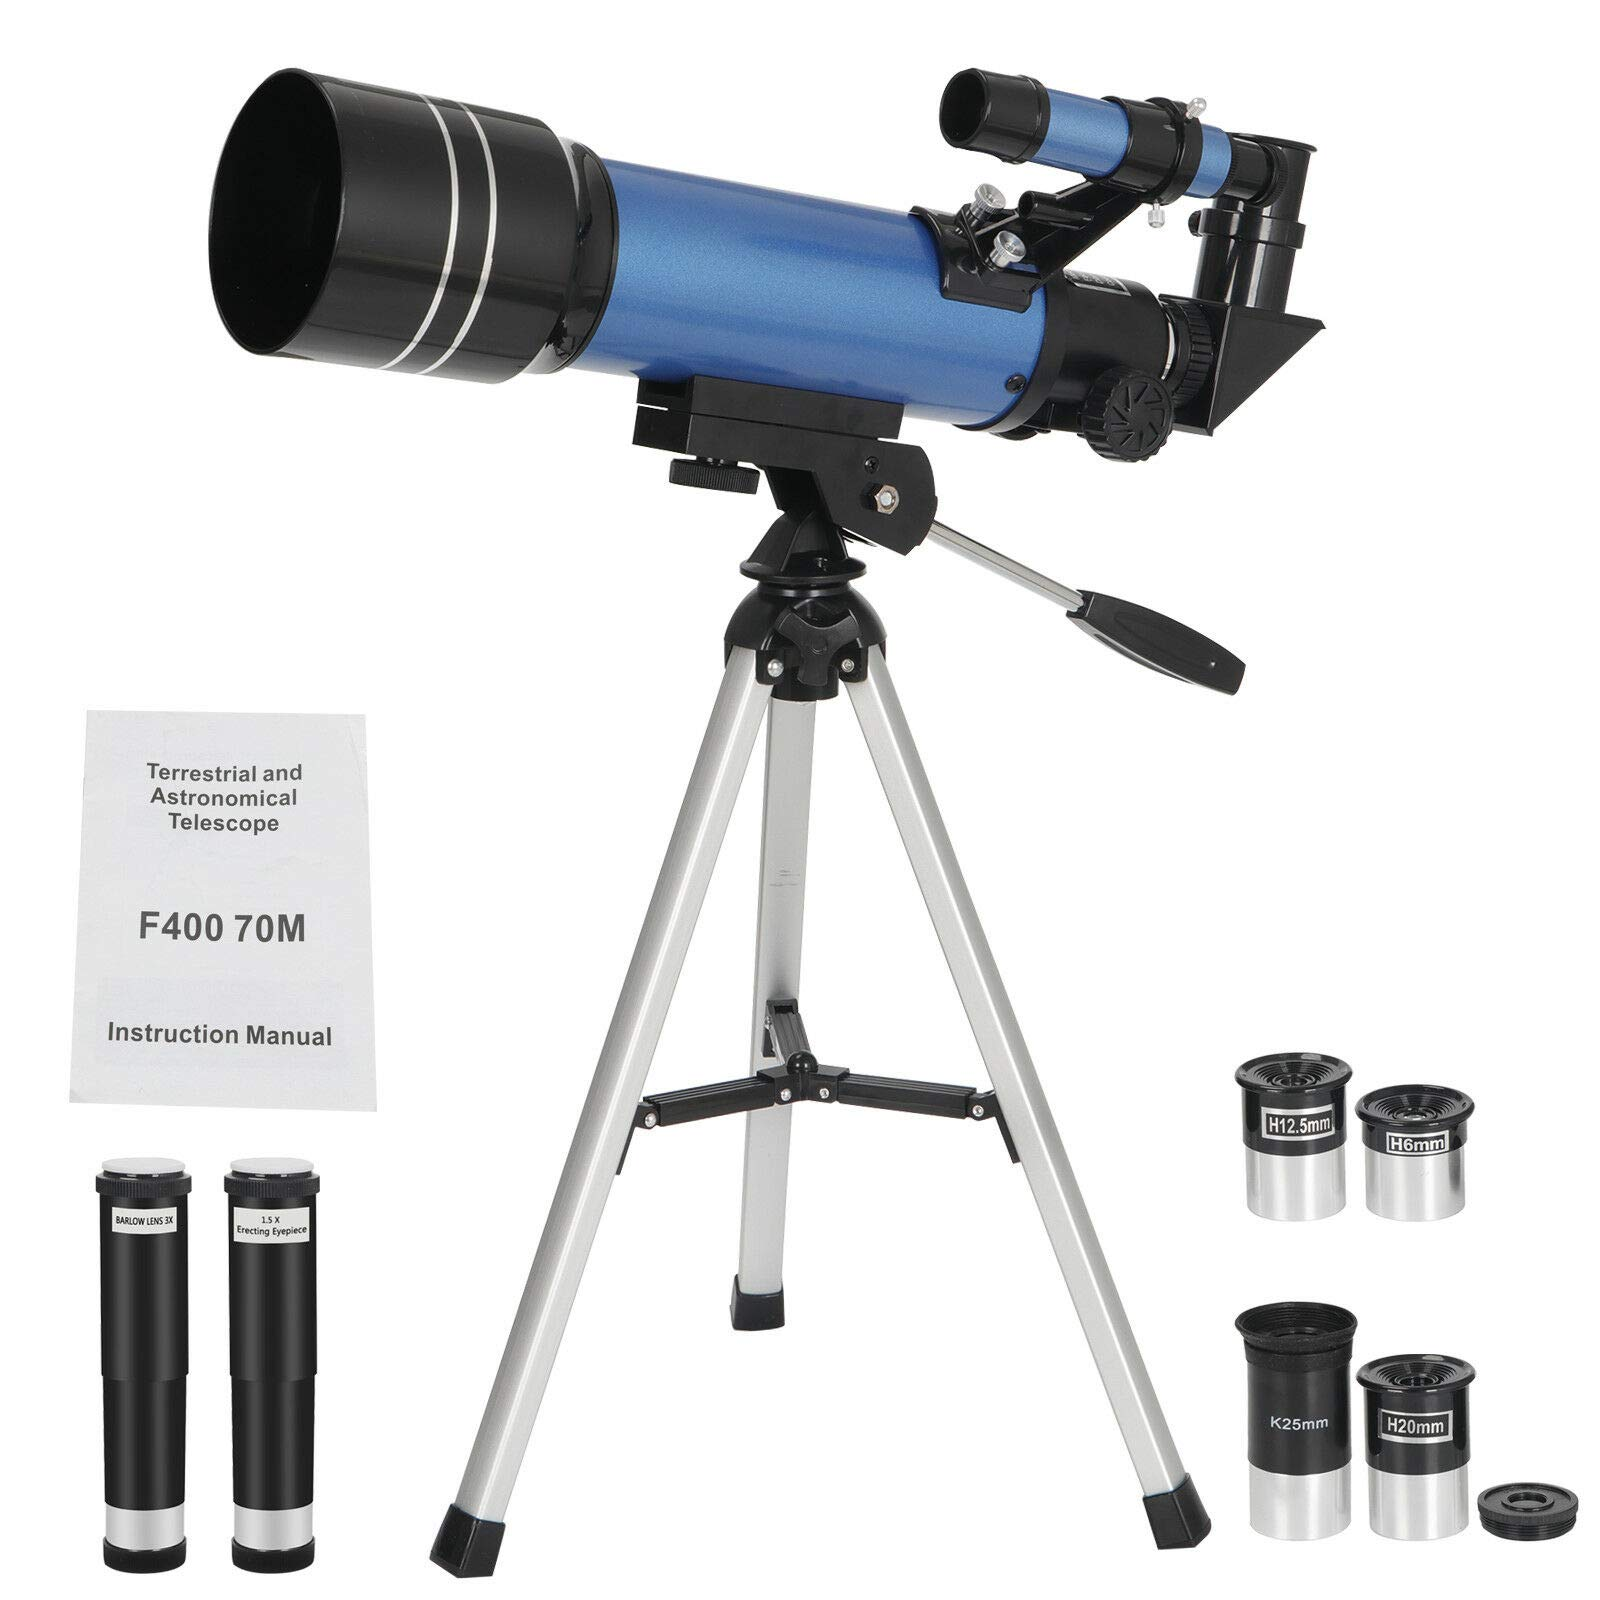 Pro-G 70-Millimeter Telescope Refractive Astronomical Refractor 4 Eyepieces Tripod Beginners for Kids Student to Explore Space Bird Watching Trek Fun by Pro-G